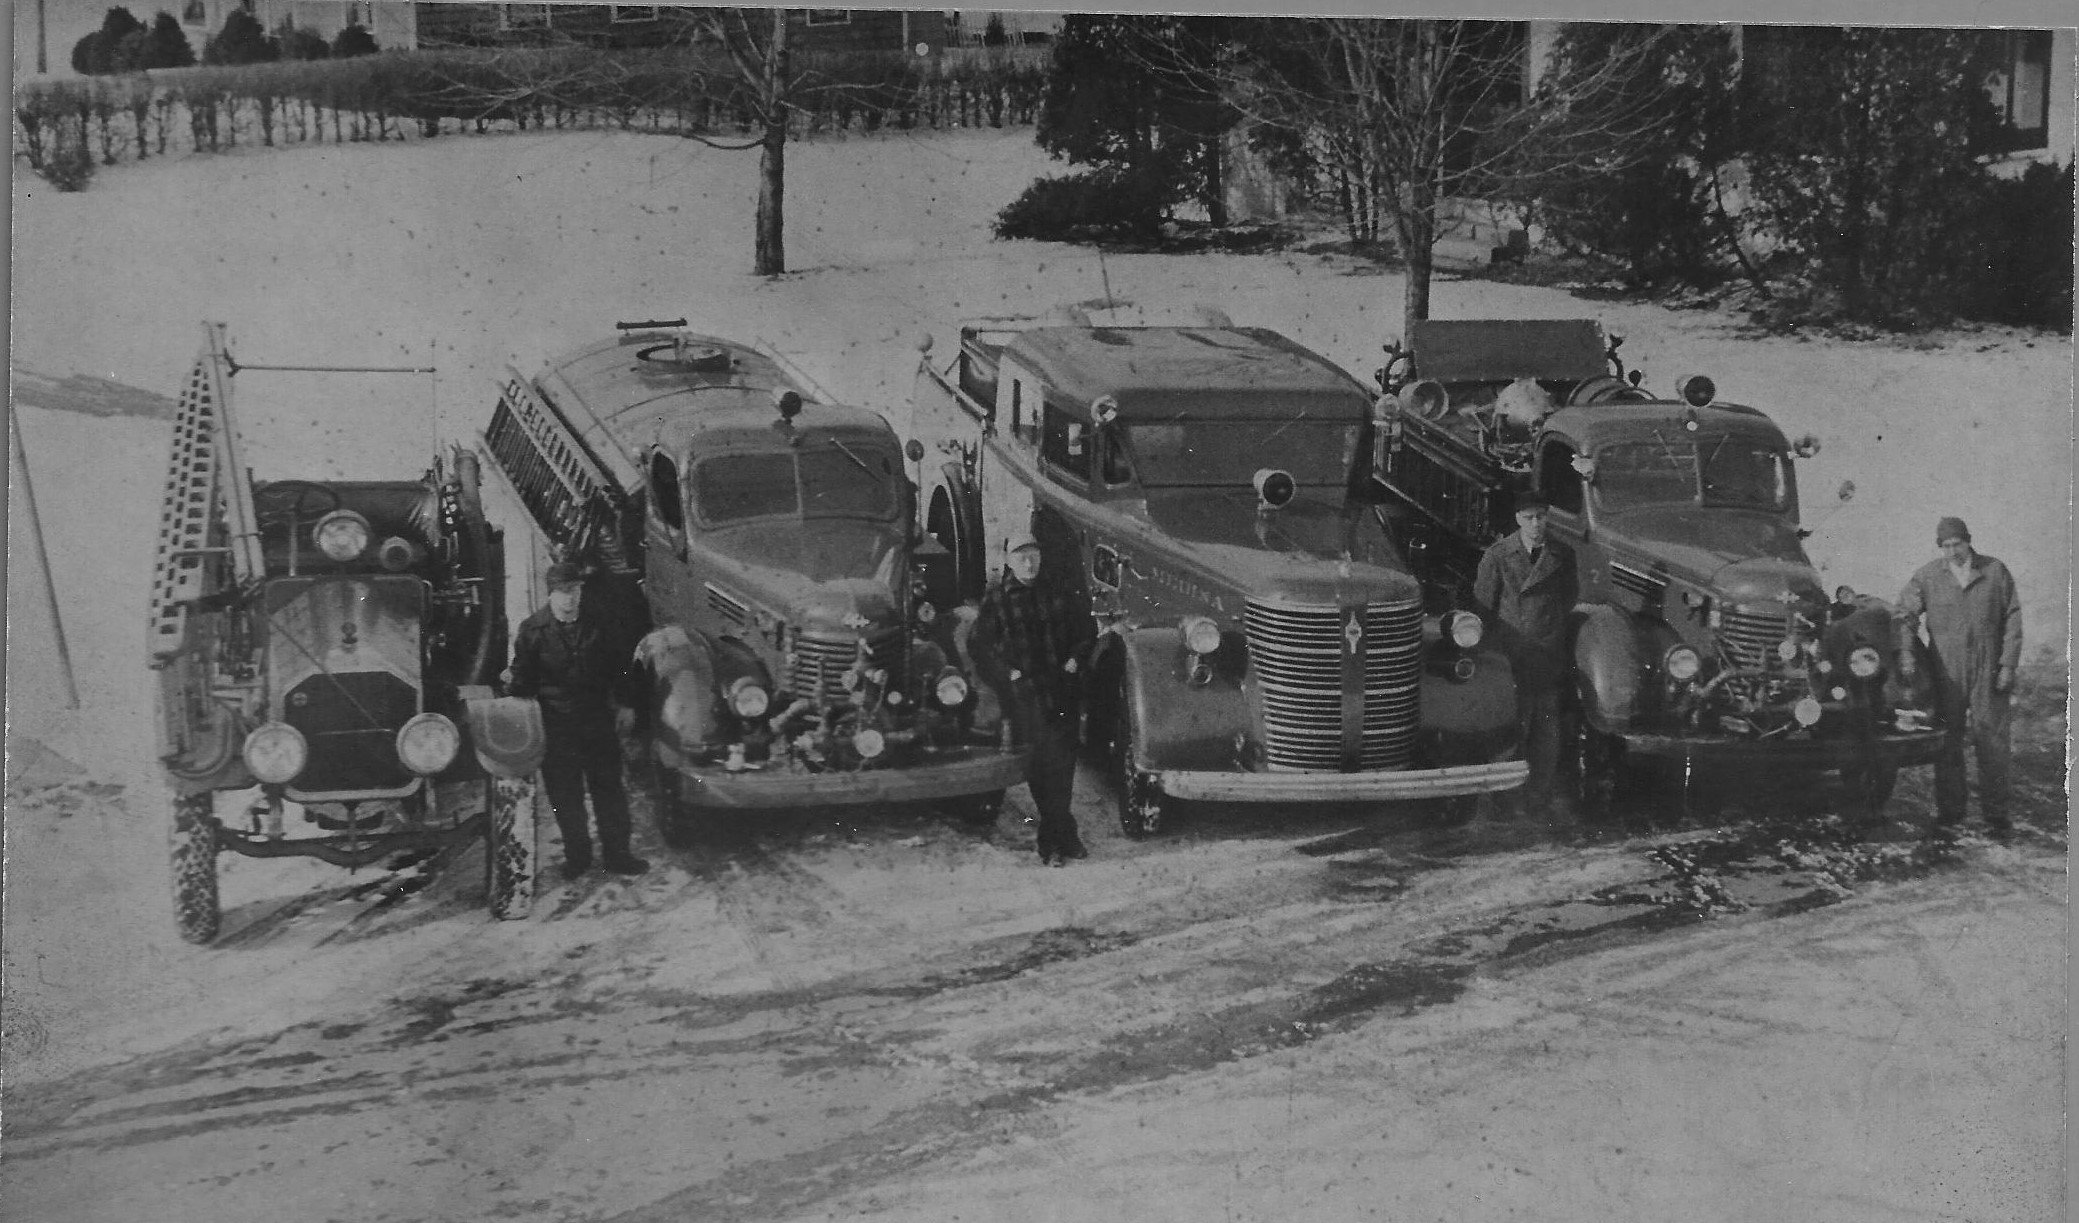 1940s Medina Fire Engines